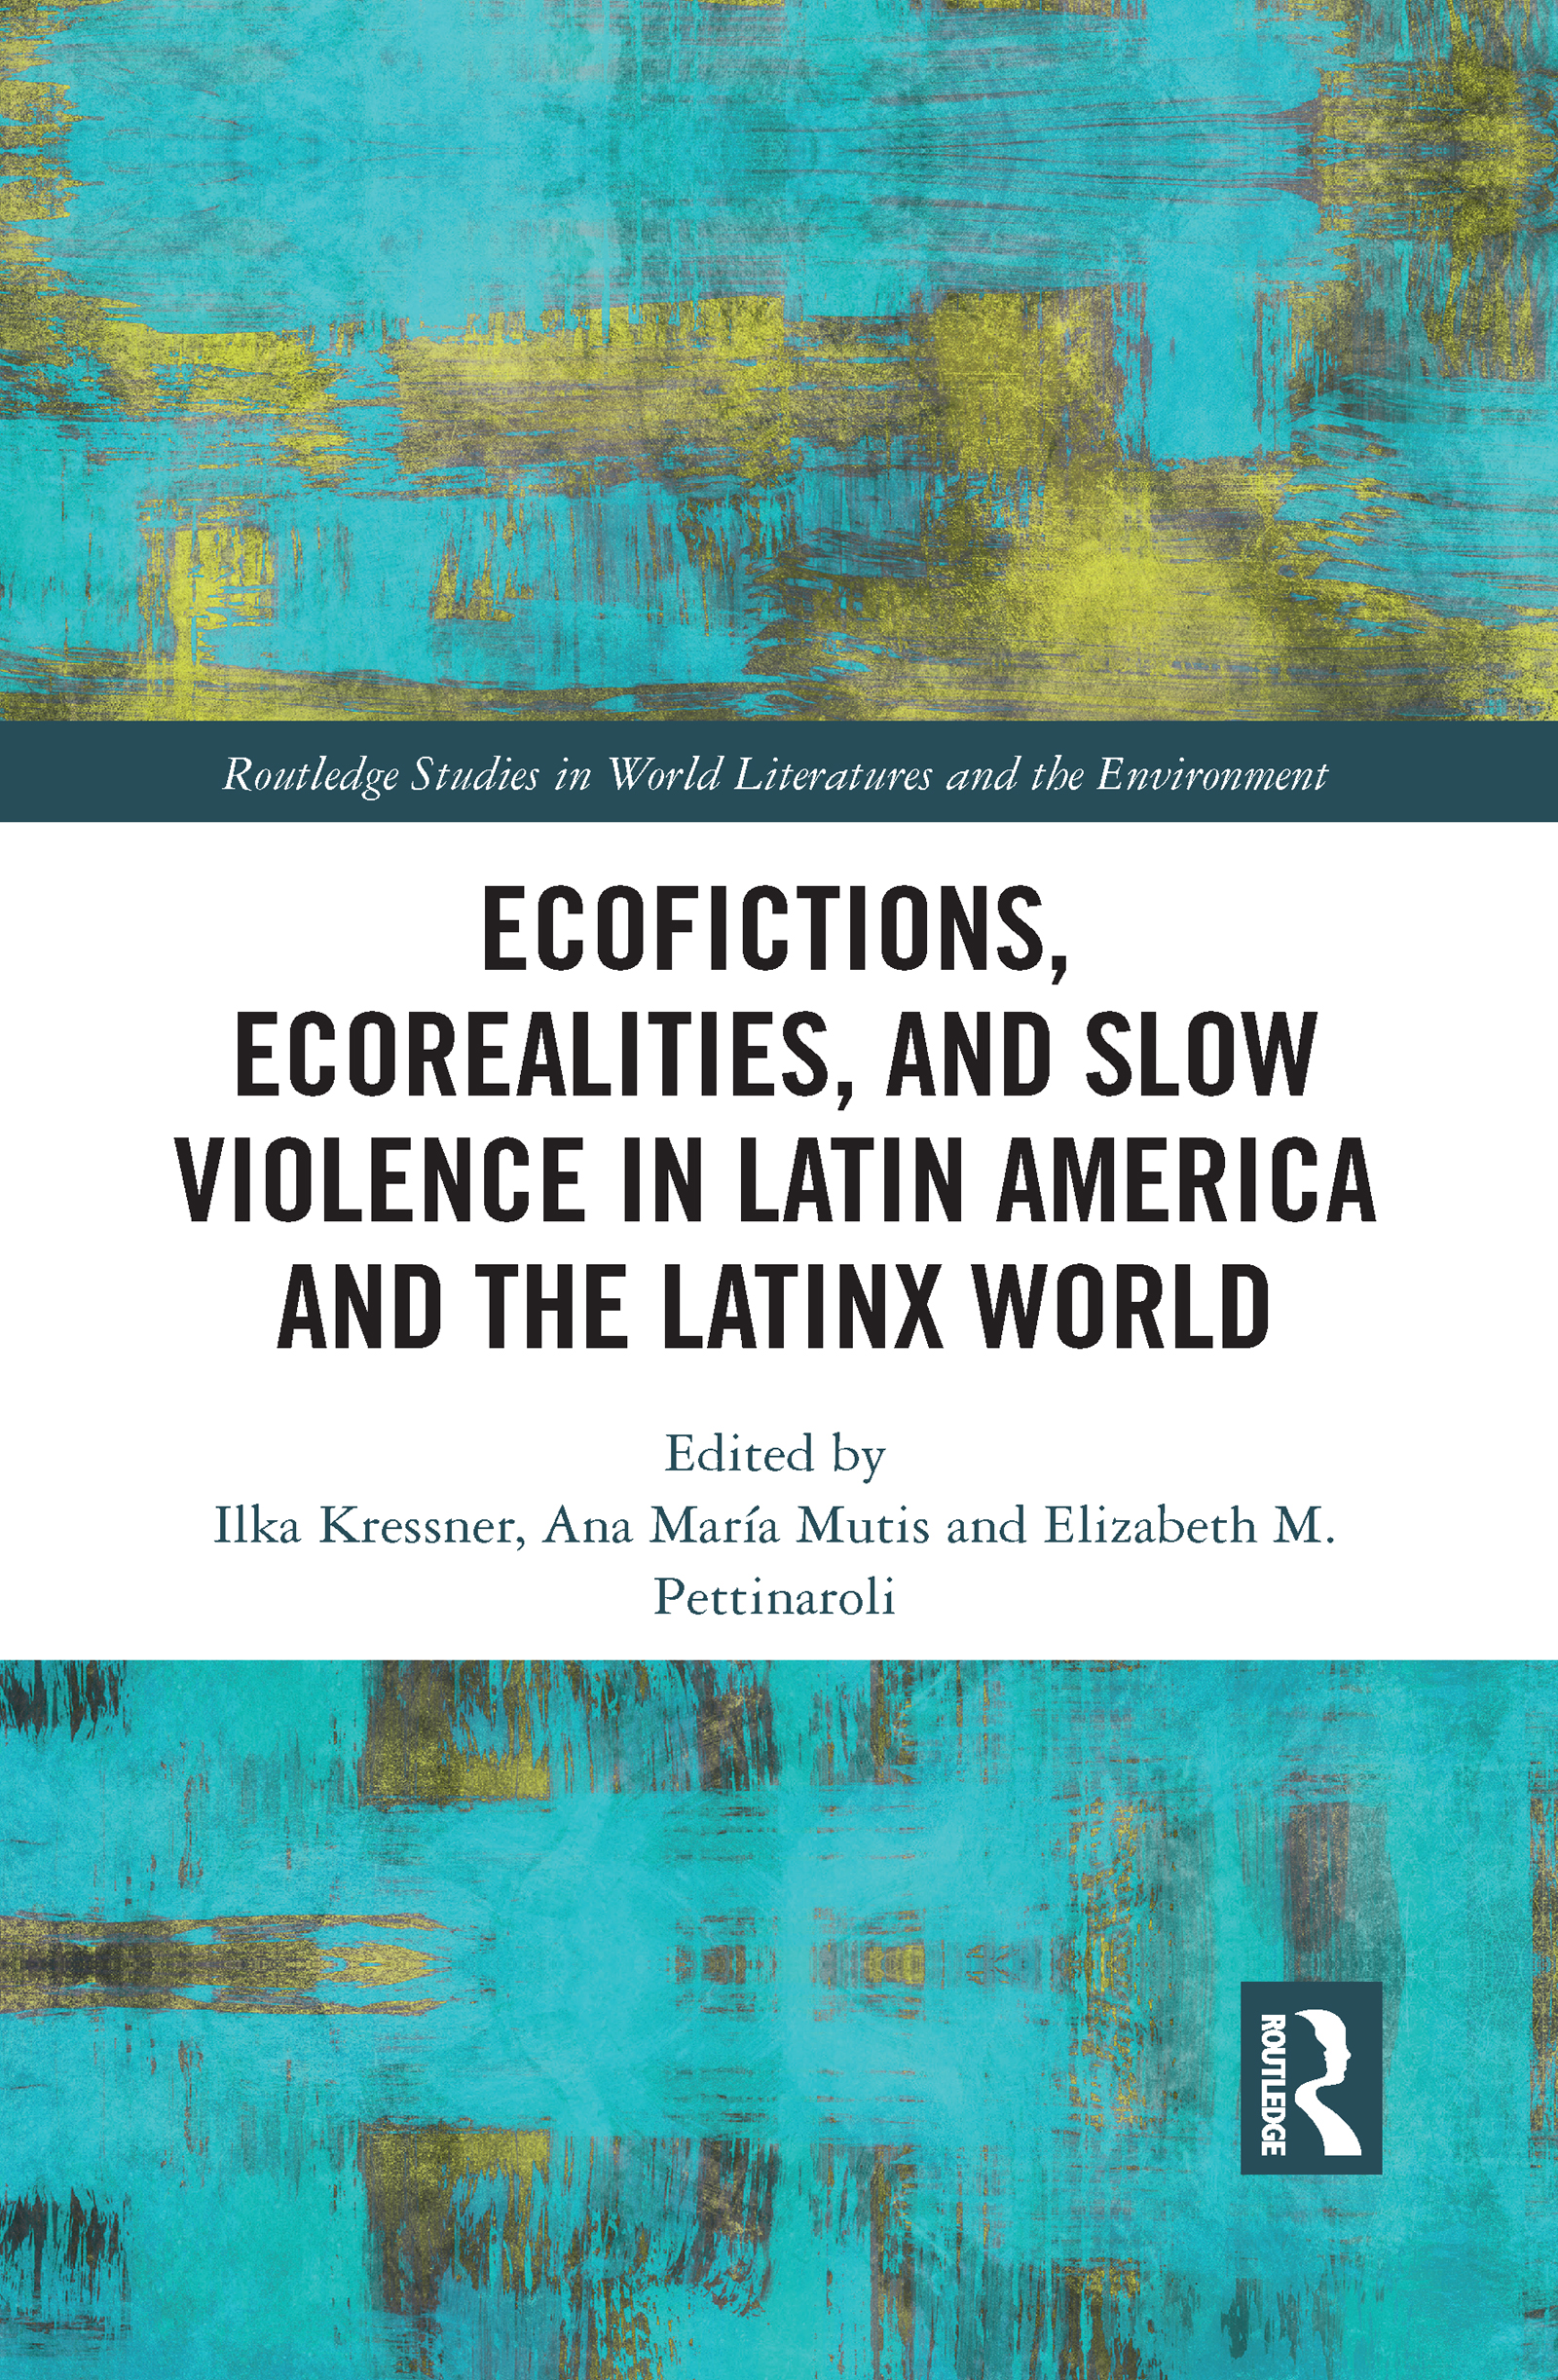 Ecofictions, Ecorealities and Slow Violence in Latin America and the Latinx World